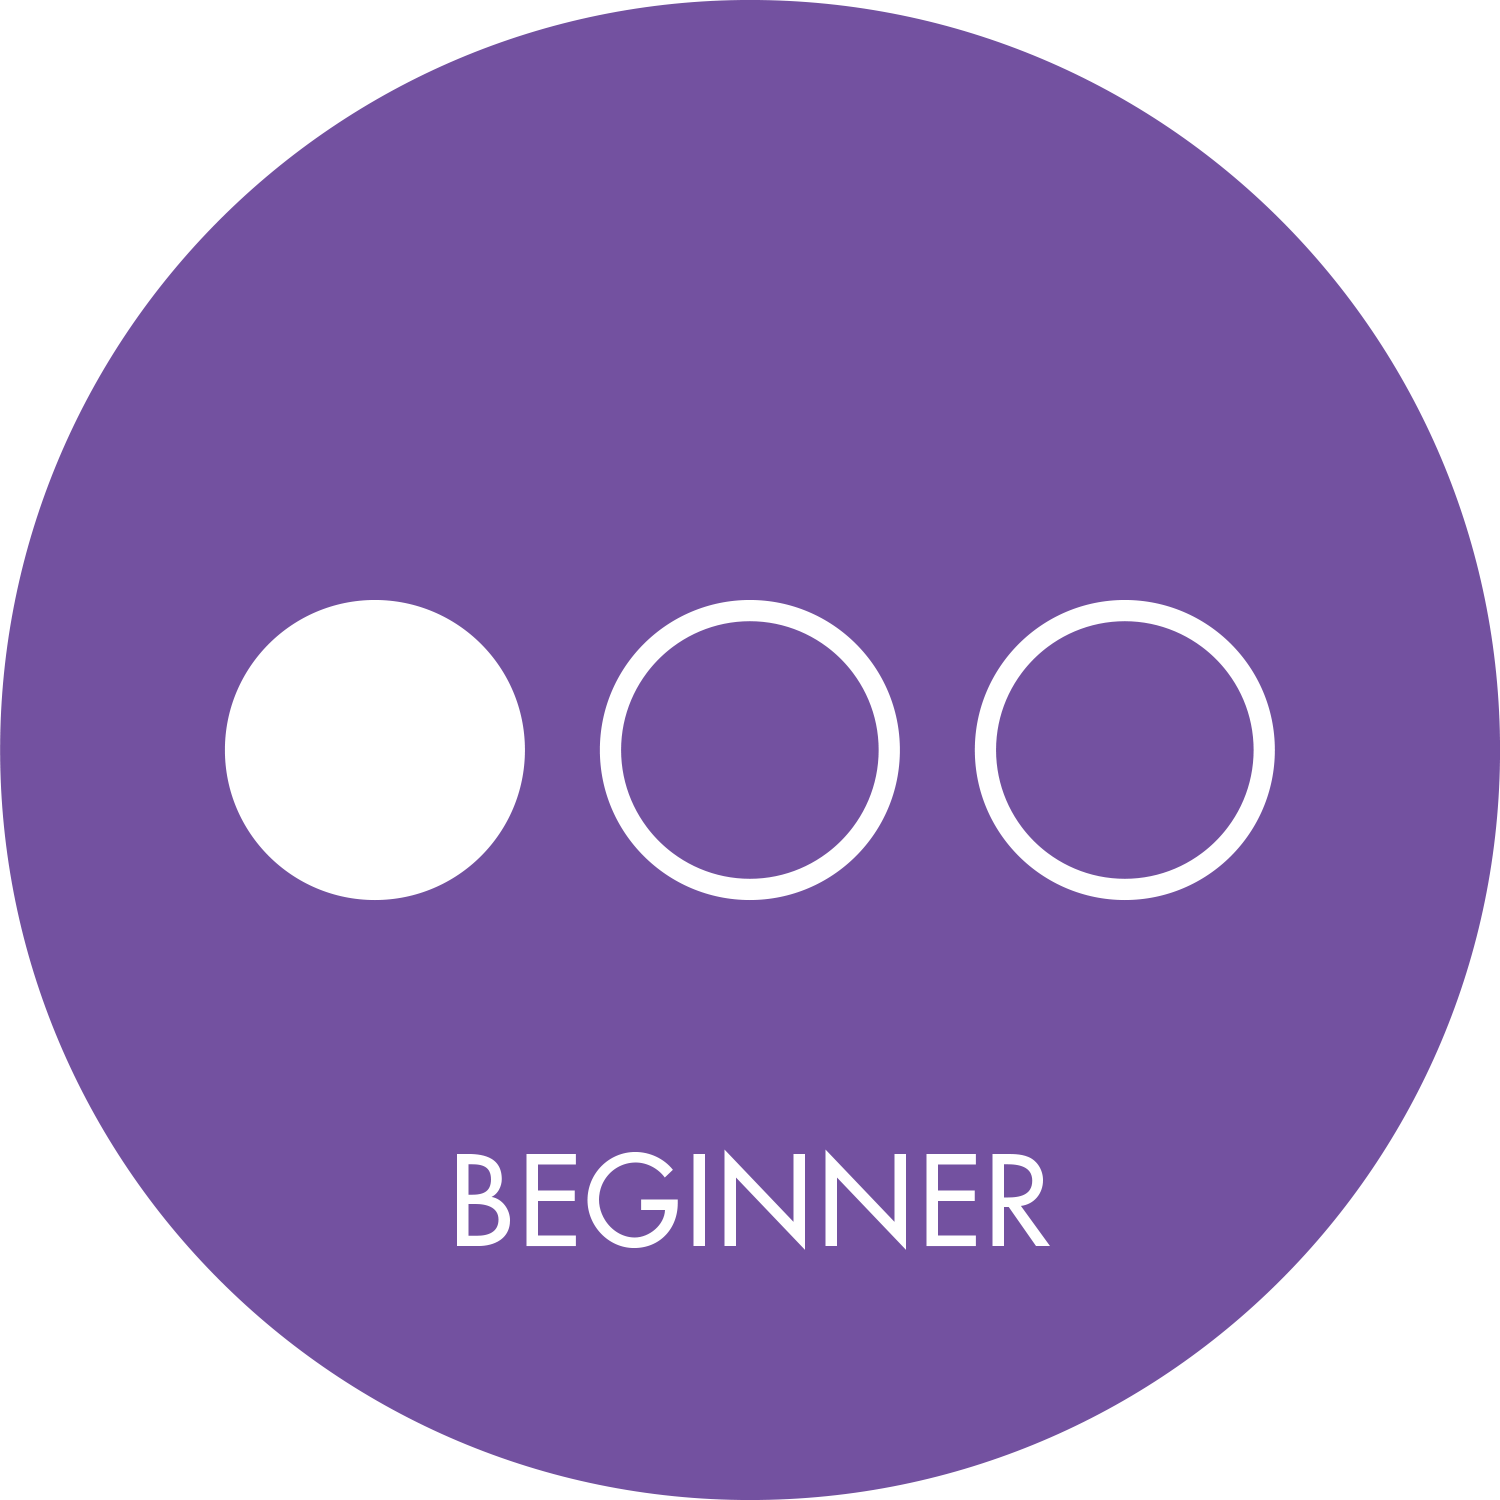 Circle_Icon_Text_Level_Beginner.png